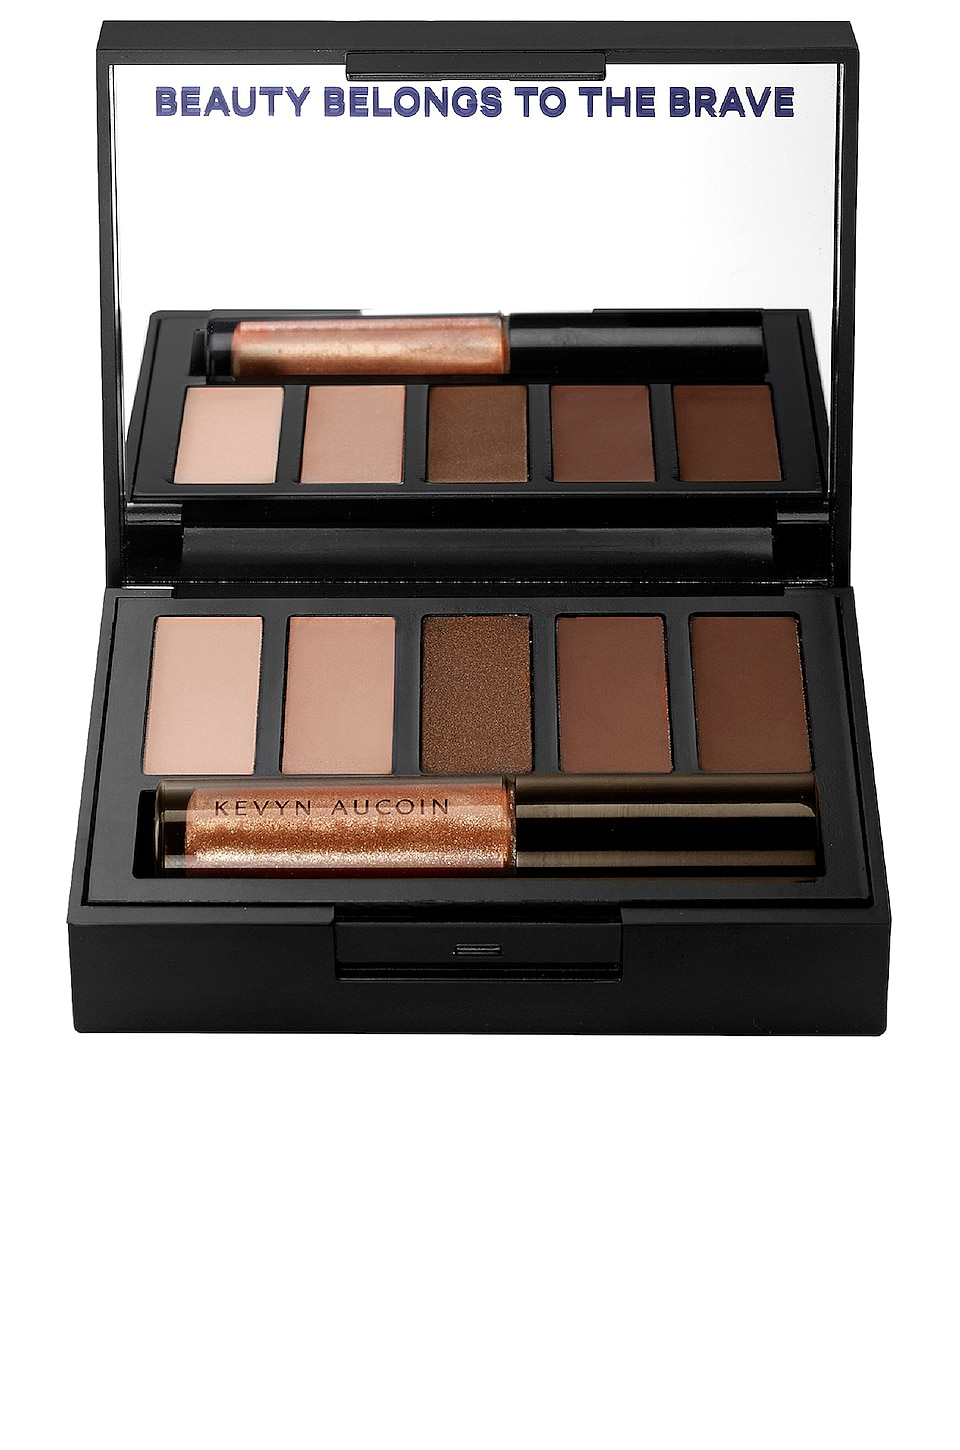 Kevyn Aucoin Emphasize Eye Design Palette in Focused